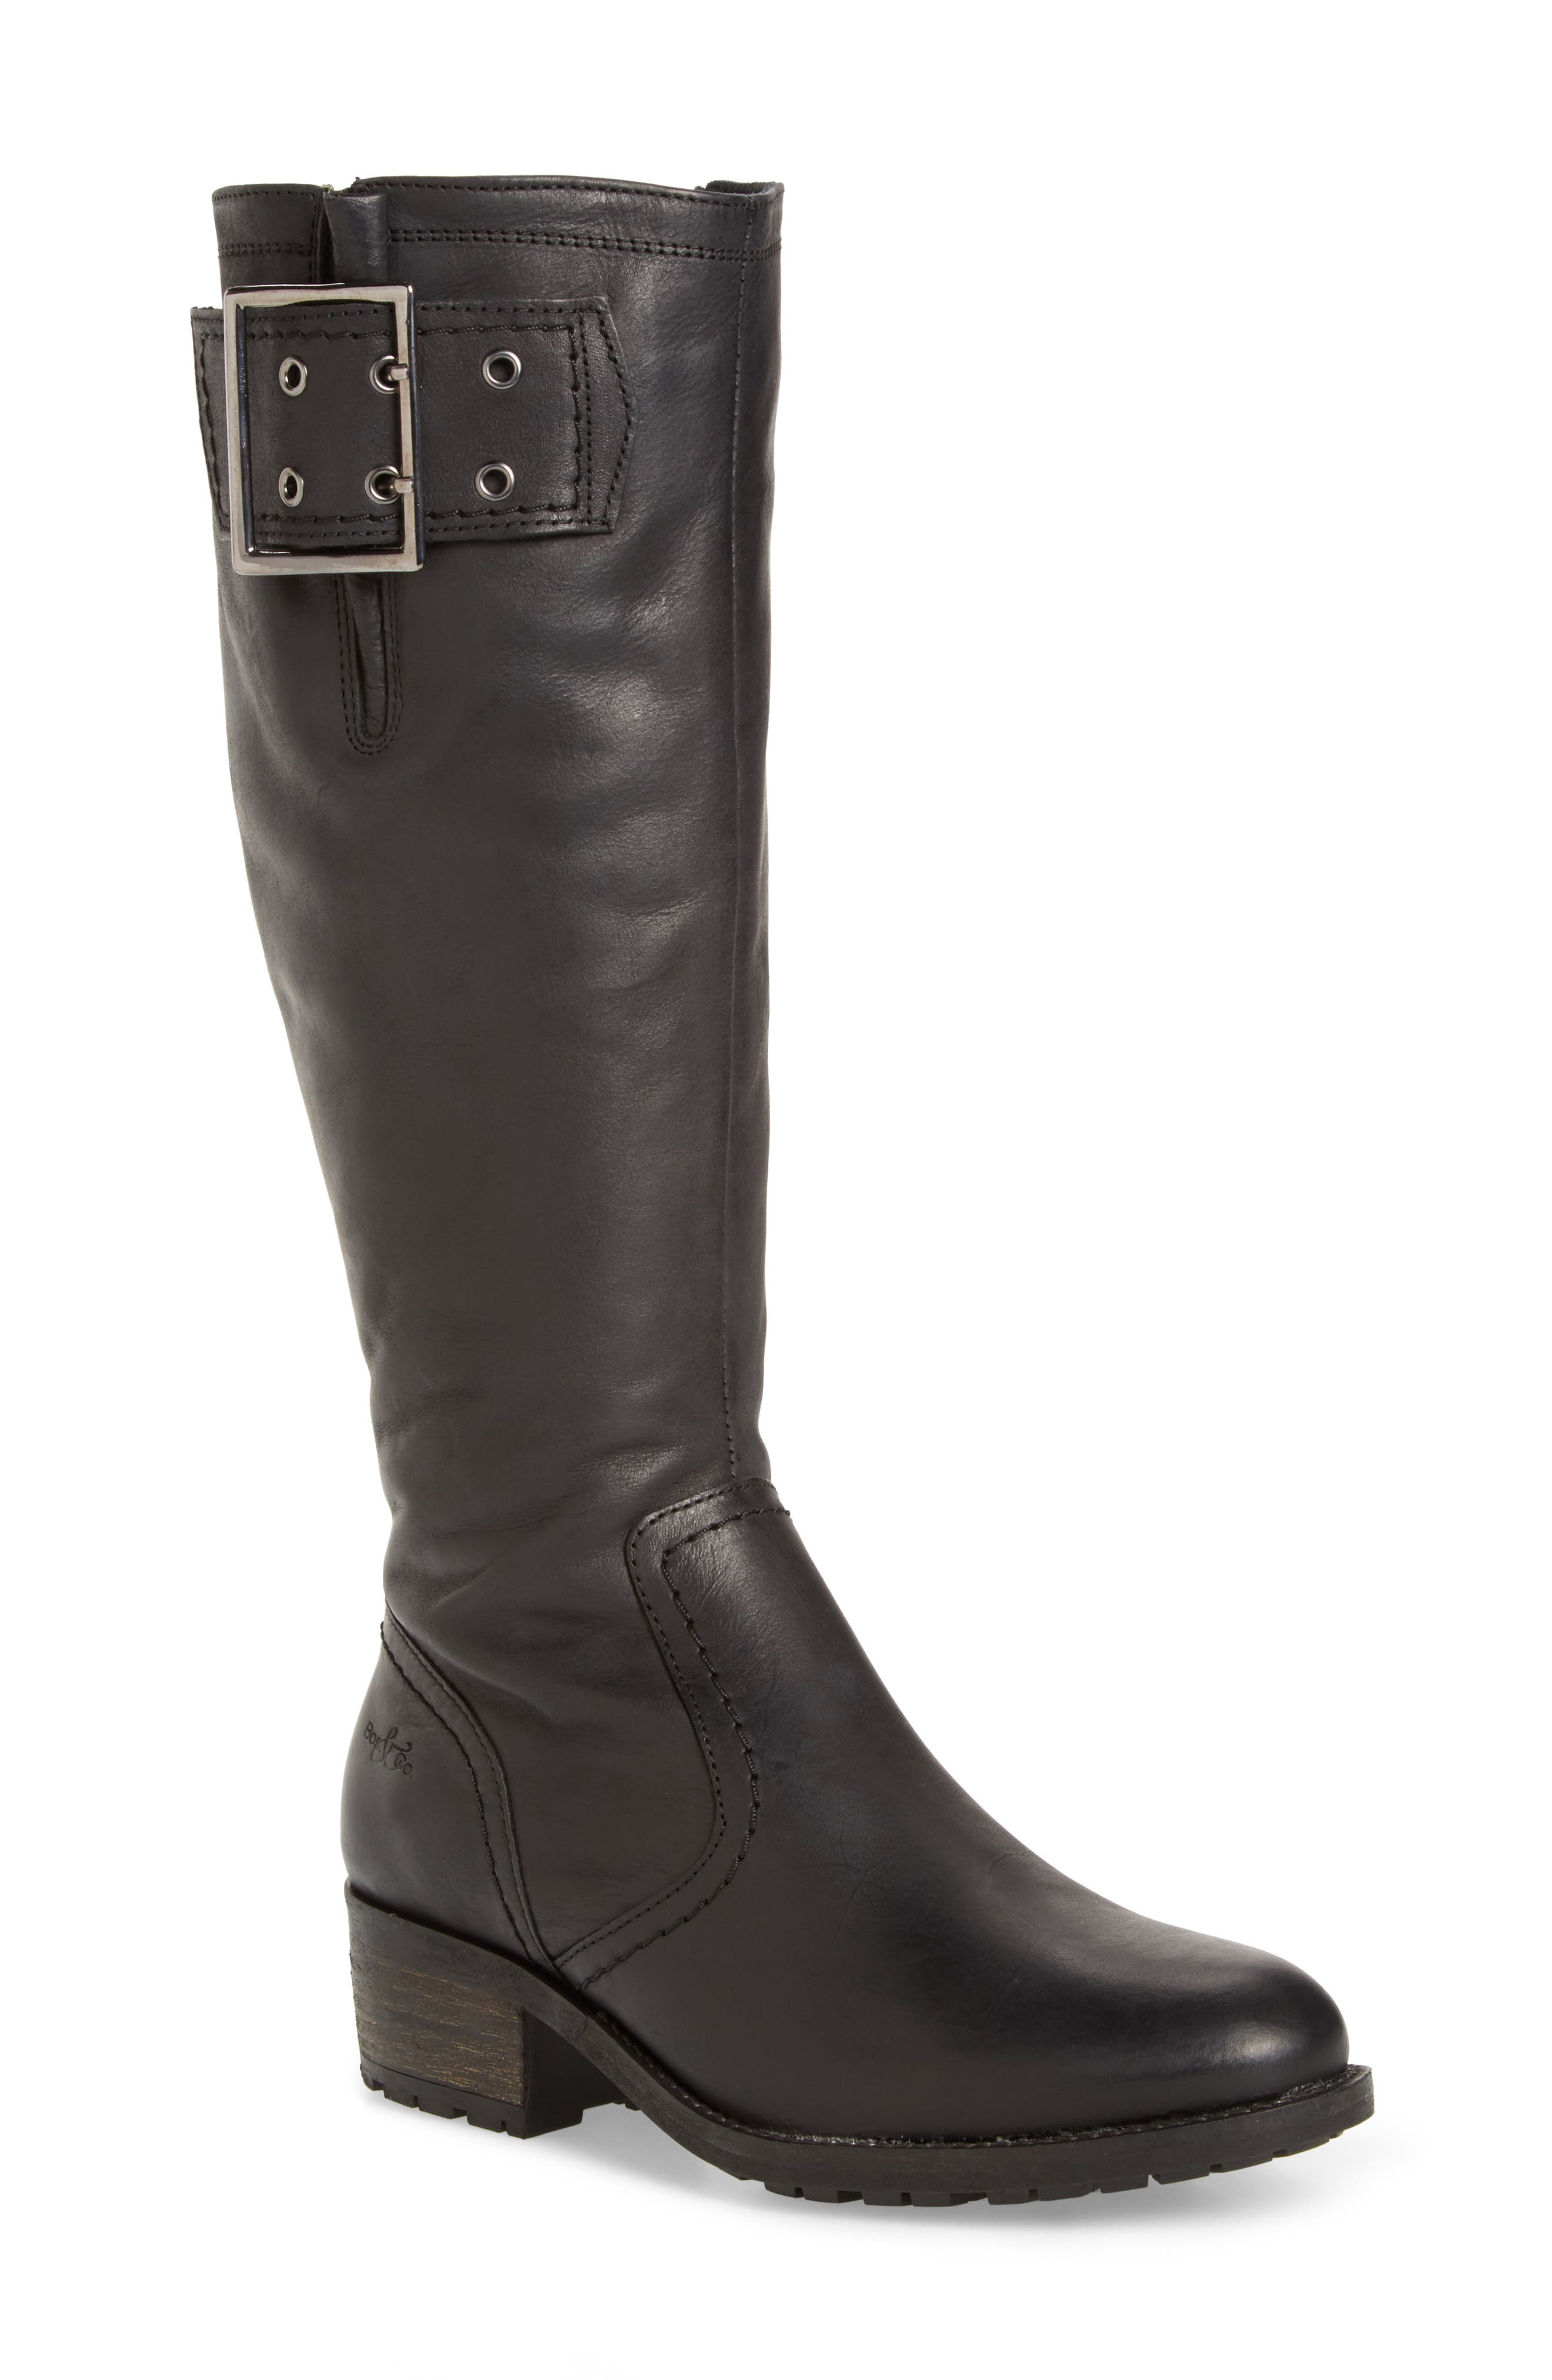 Main Image - Bos. & Co. Lawson Tall Waterproof Boot (Women)